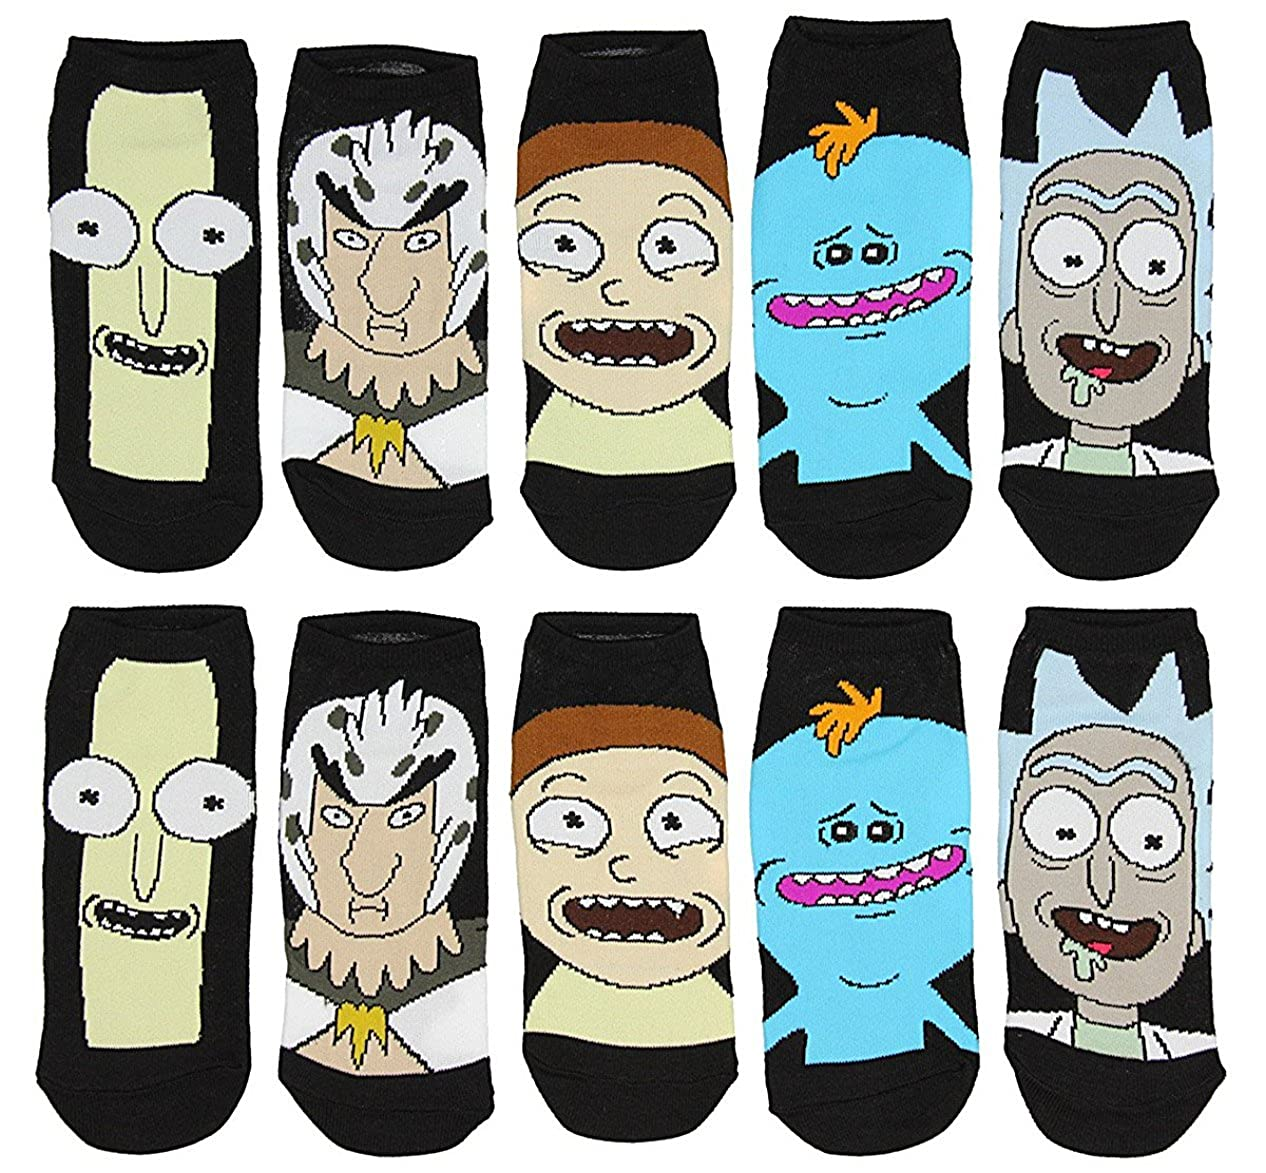 Rick and Morty Women's Low Cut Ankle Socks, Asst. Characters 5-Pack Hypnotic Socks